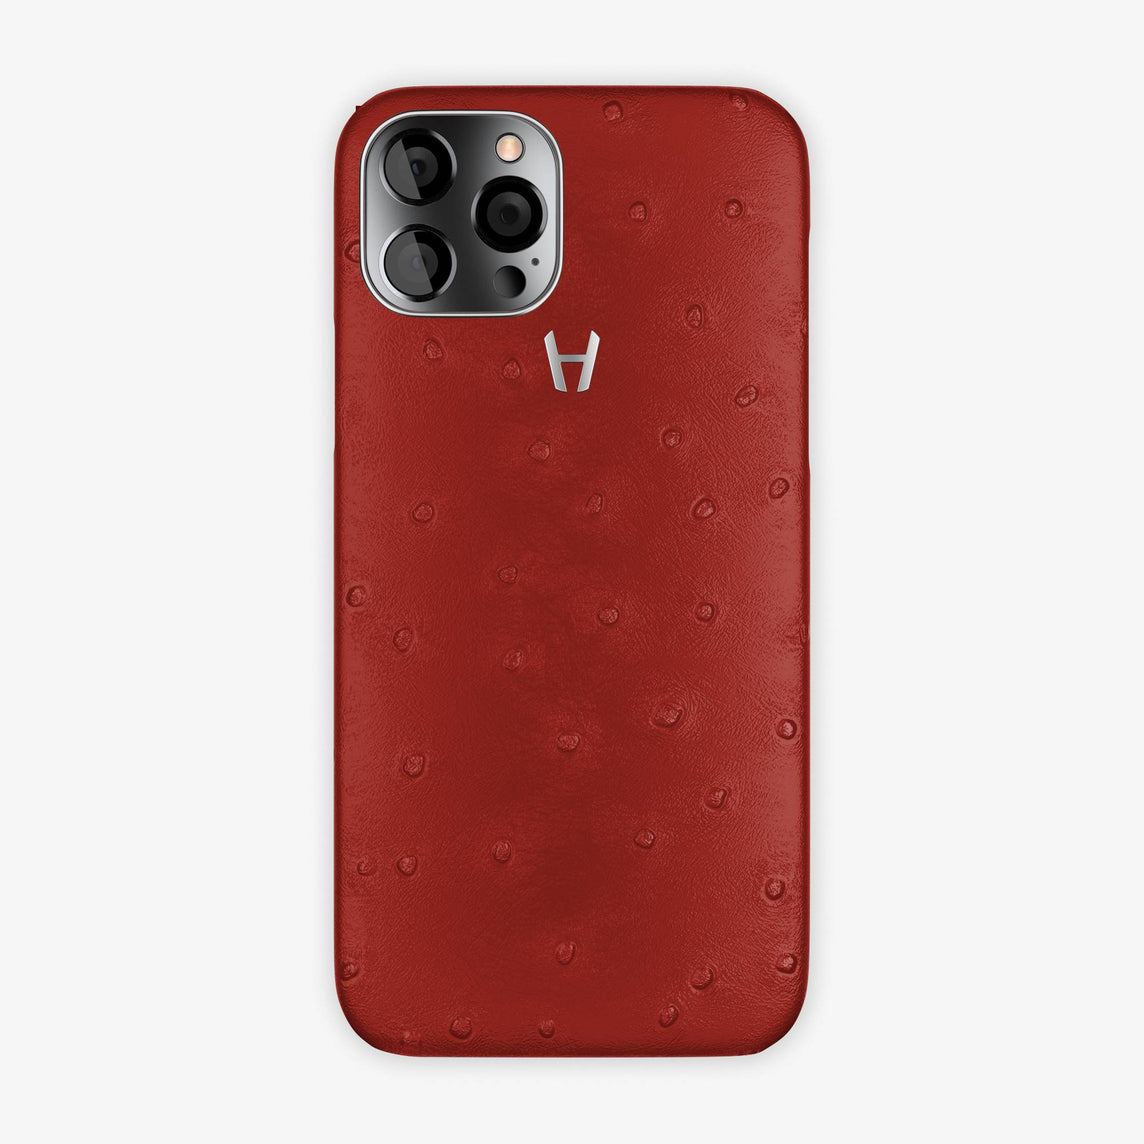 Ostrich Case iPhone 12 Pro | Red - Stainless Steel